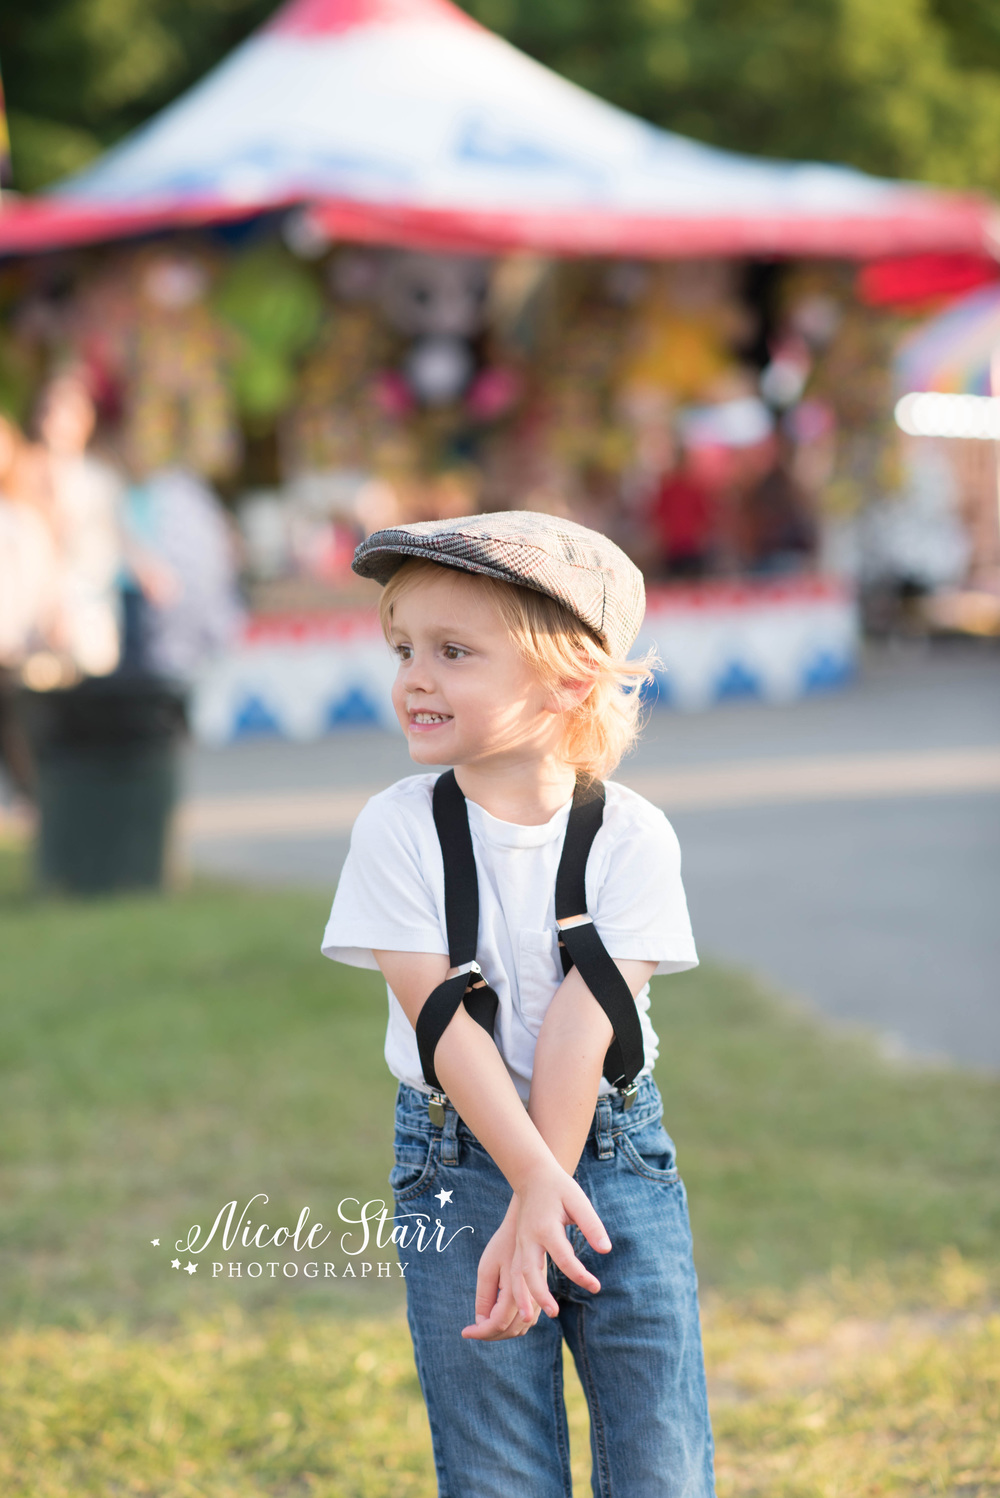 saratoga county fair photo shoot.jpg